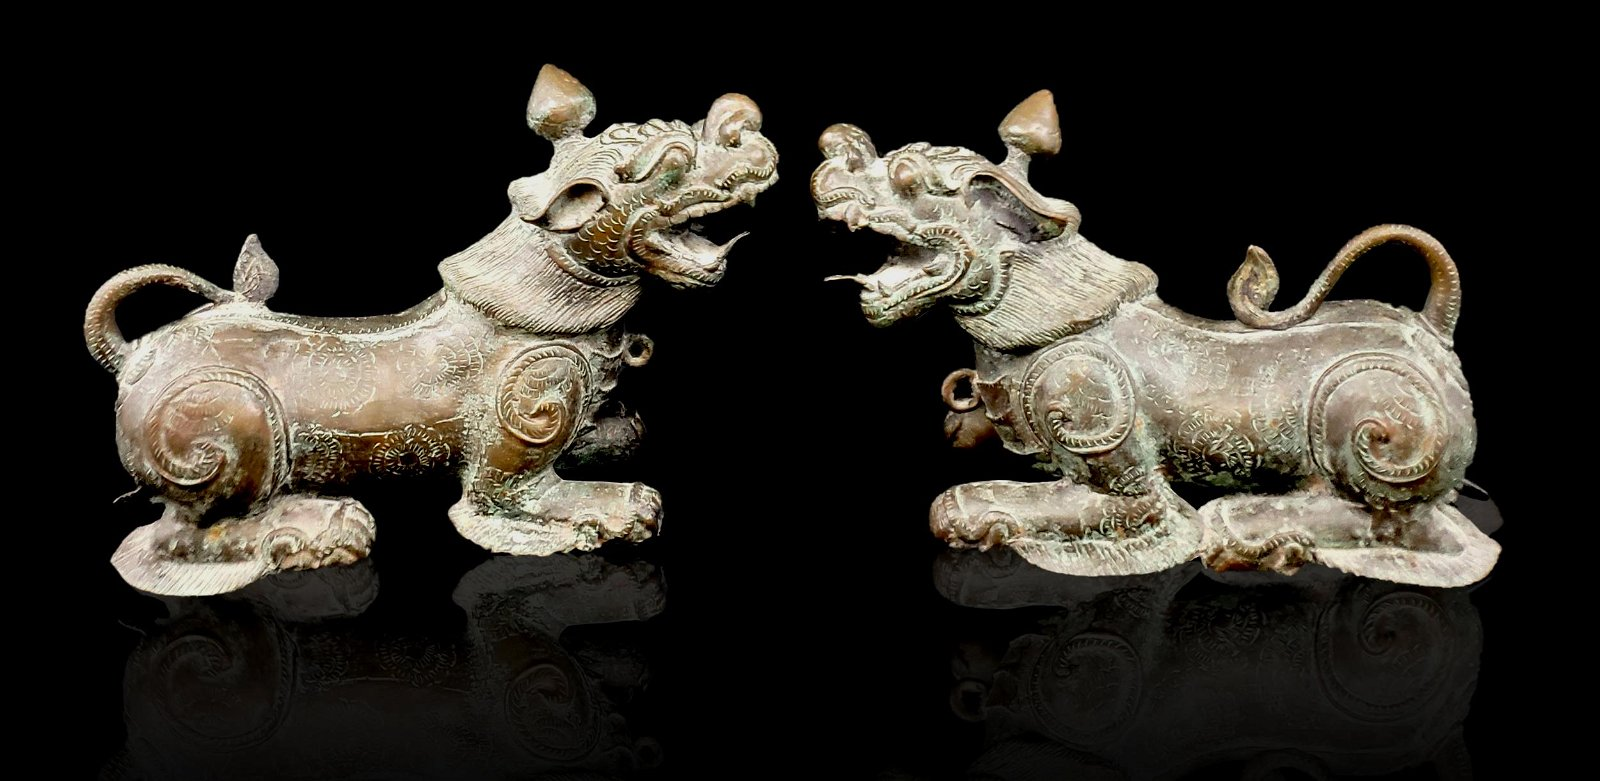 Pr of Antique Chinese Bronze Foo Dogs 19 C / Earlier